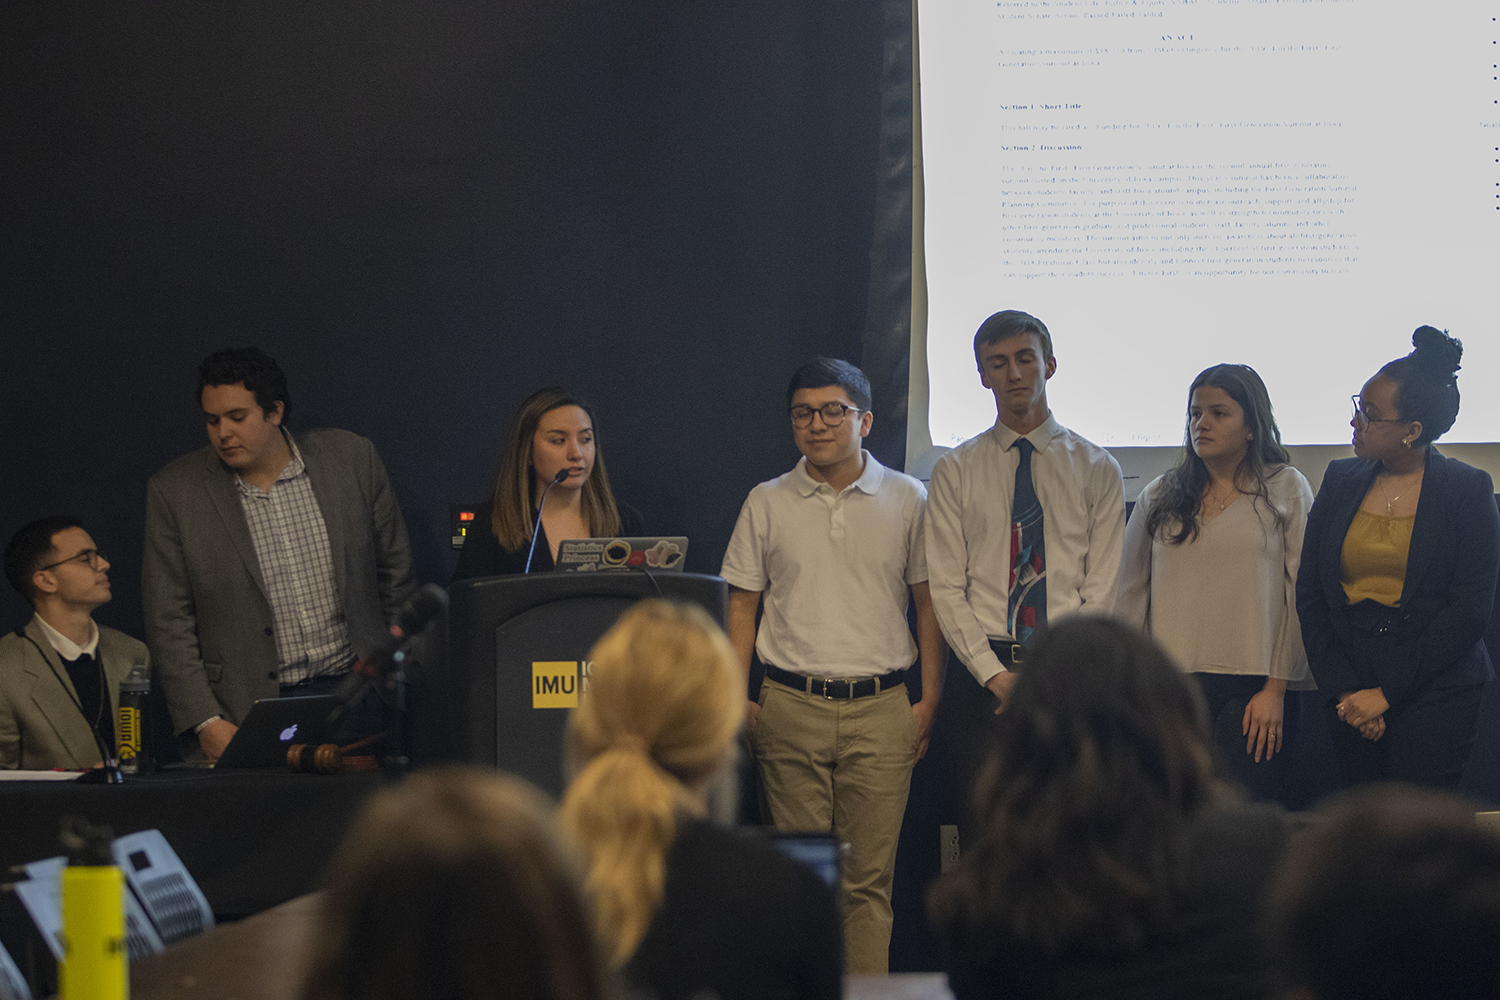 UISG Senator Alexia Sanchez (third from left) speaks during a UISG meeting in the IMU Black Box Theater on Tuesday, February 26, 2019.